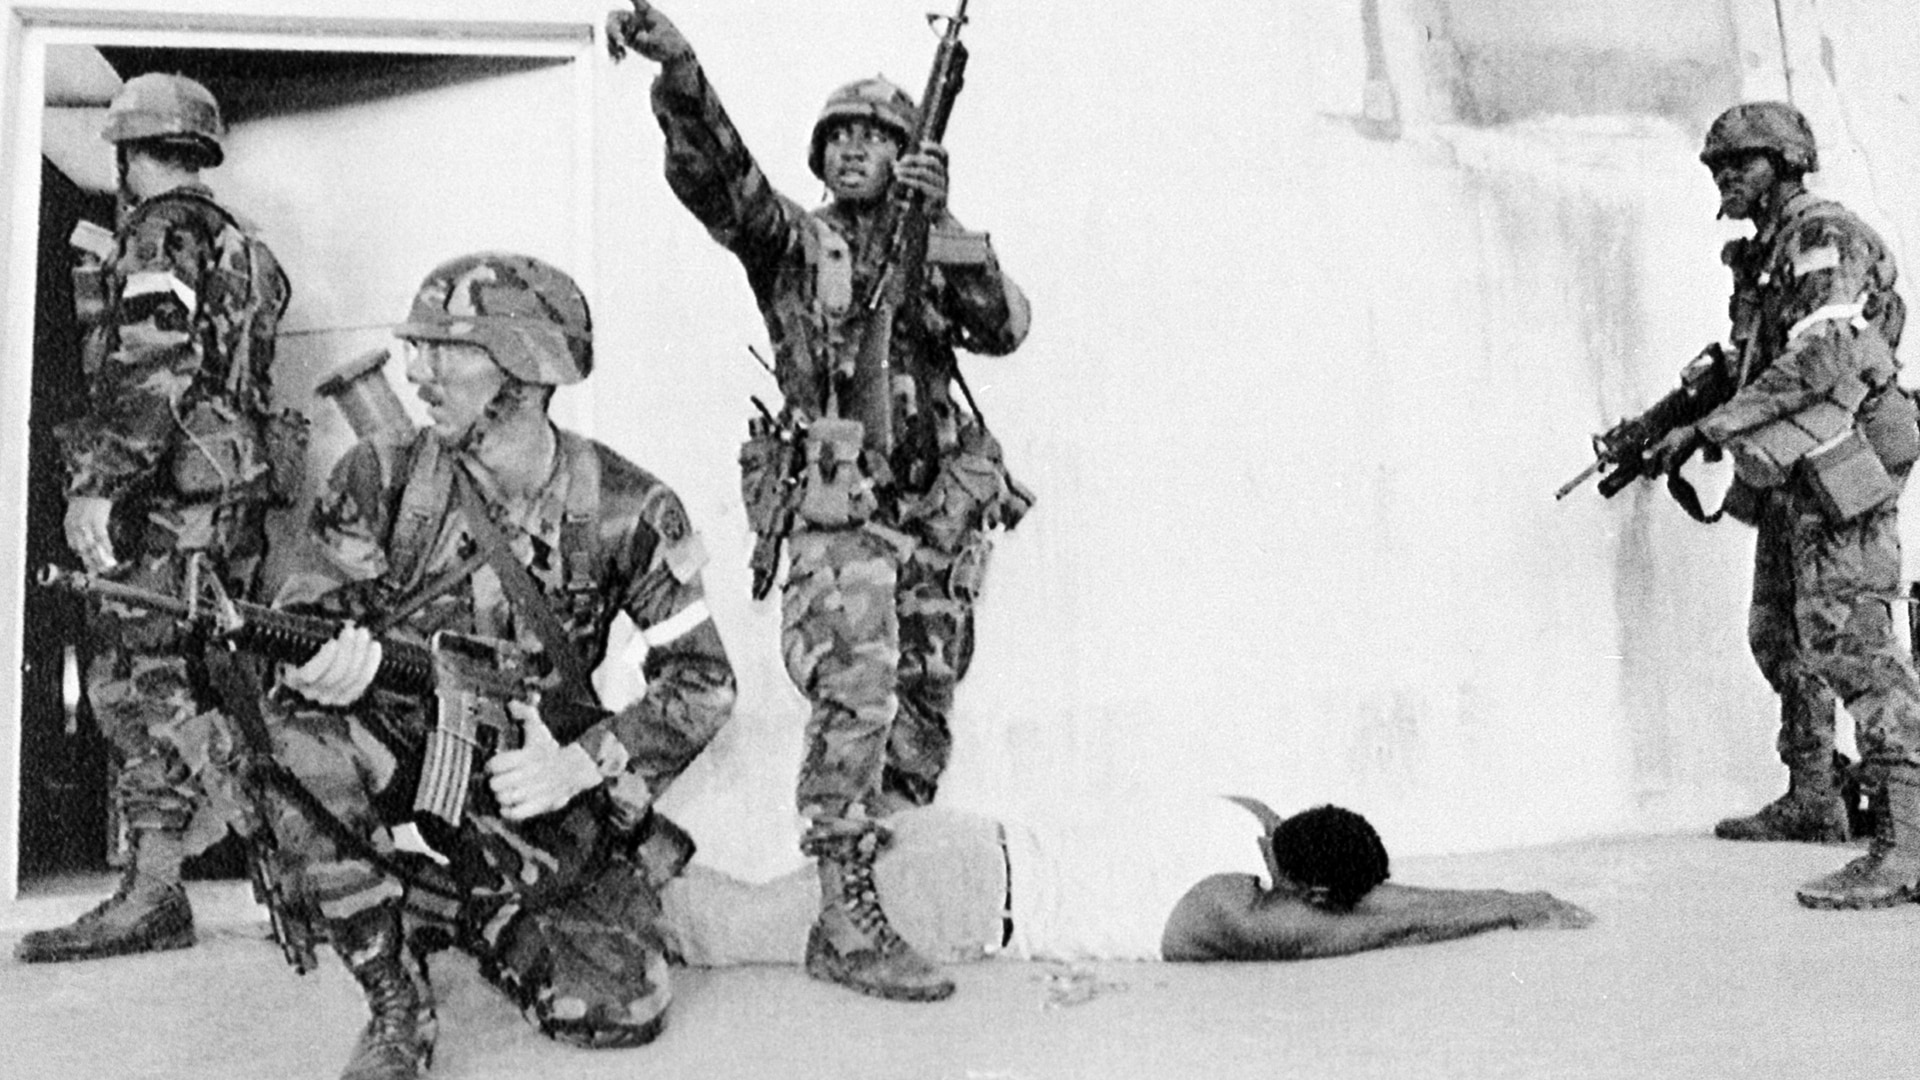 A Panamanian man is detained by troops from the 82nd Airborne Division during a sweep of the Viejo section of Panama City on Dec. 27, 1989. (DoD via the AP)